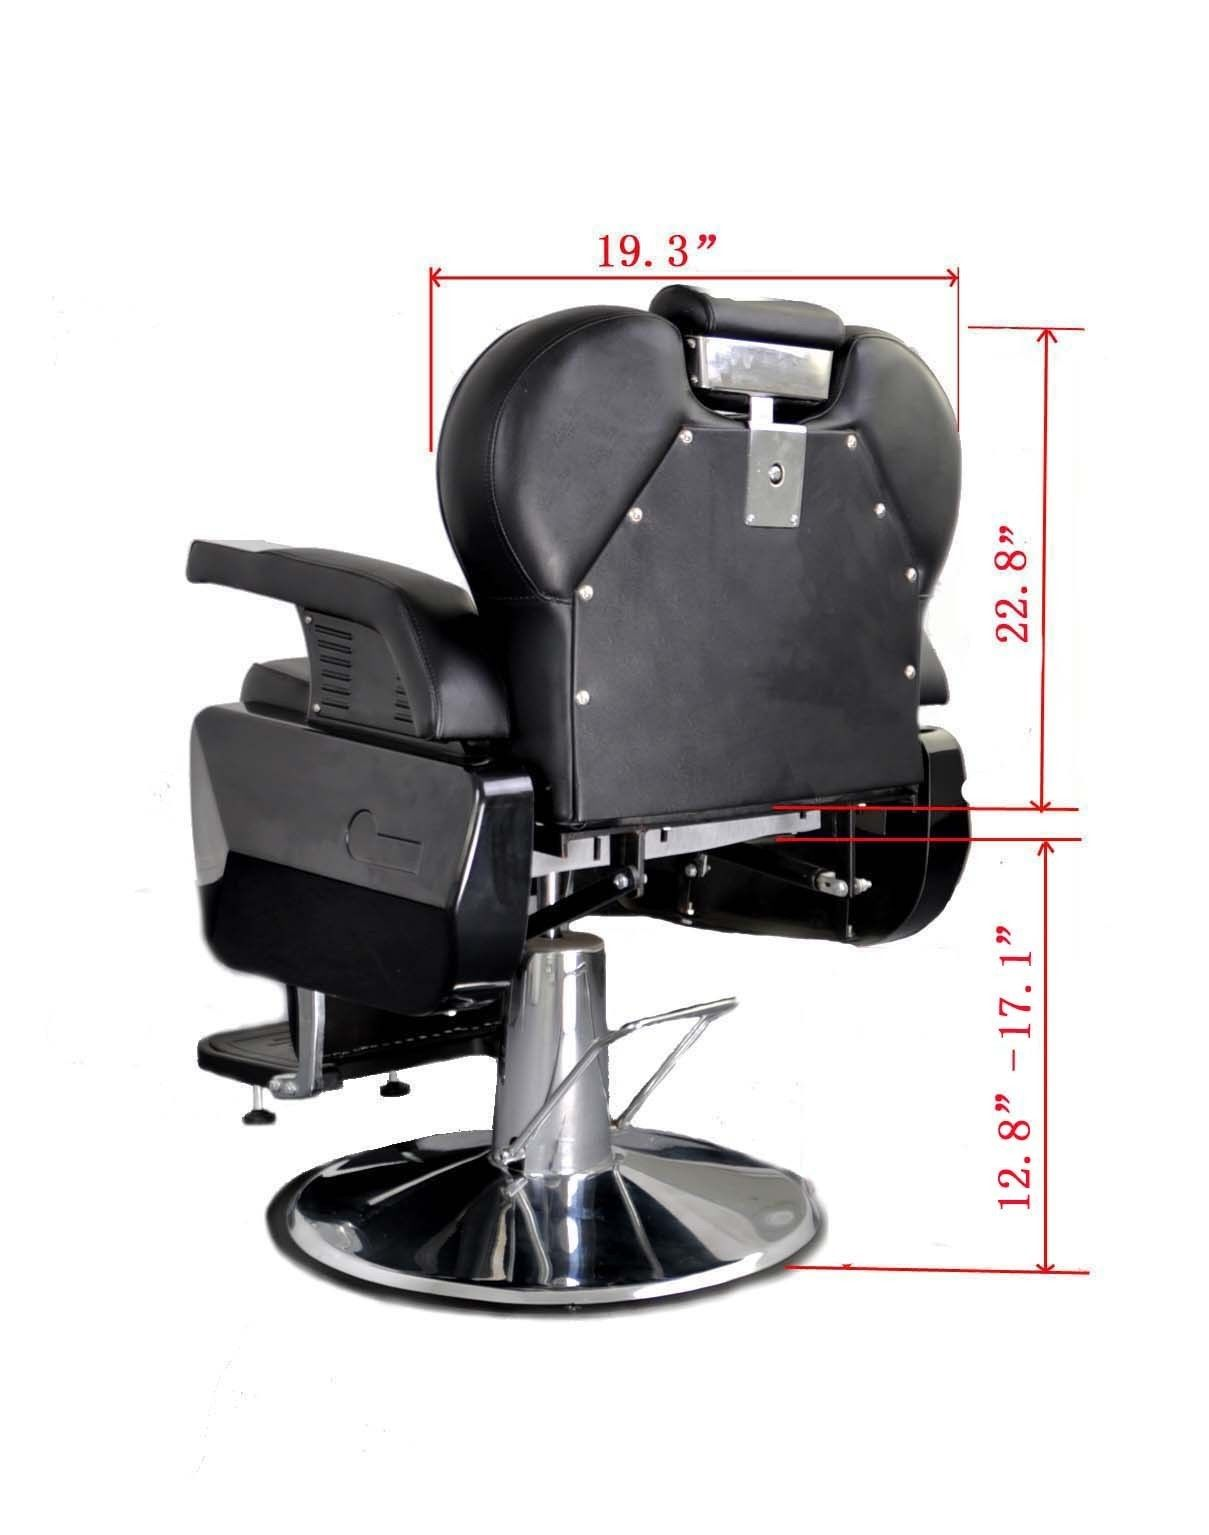 BarberPub All Purpose Hydraulic Recline Barber Chair Salon Beauty Spa 8702 Brown 23